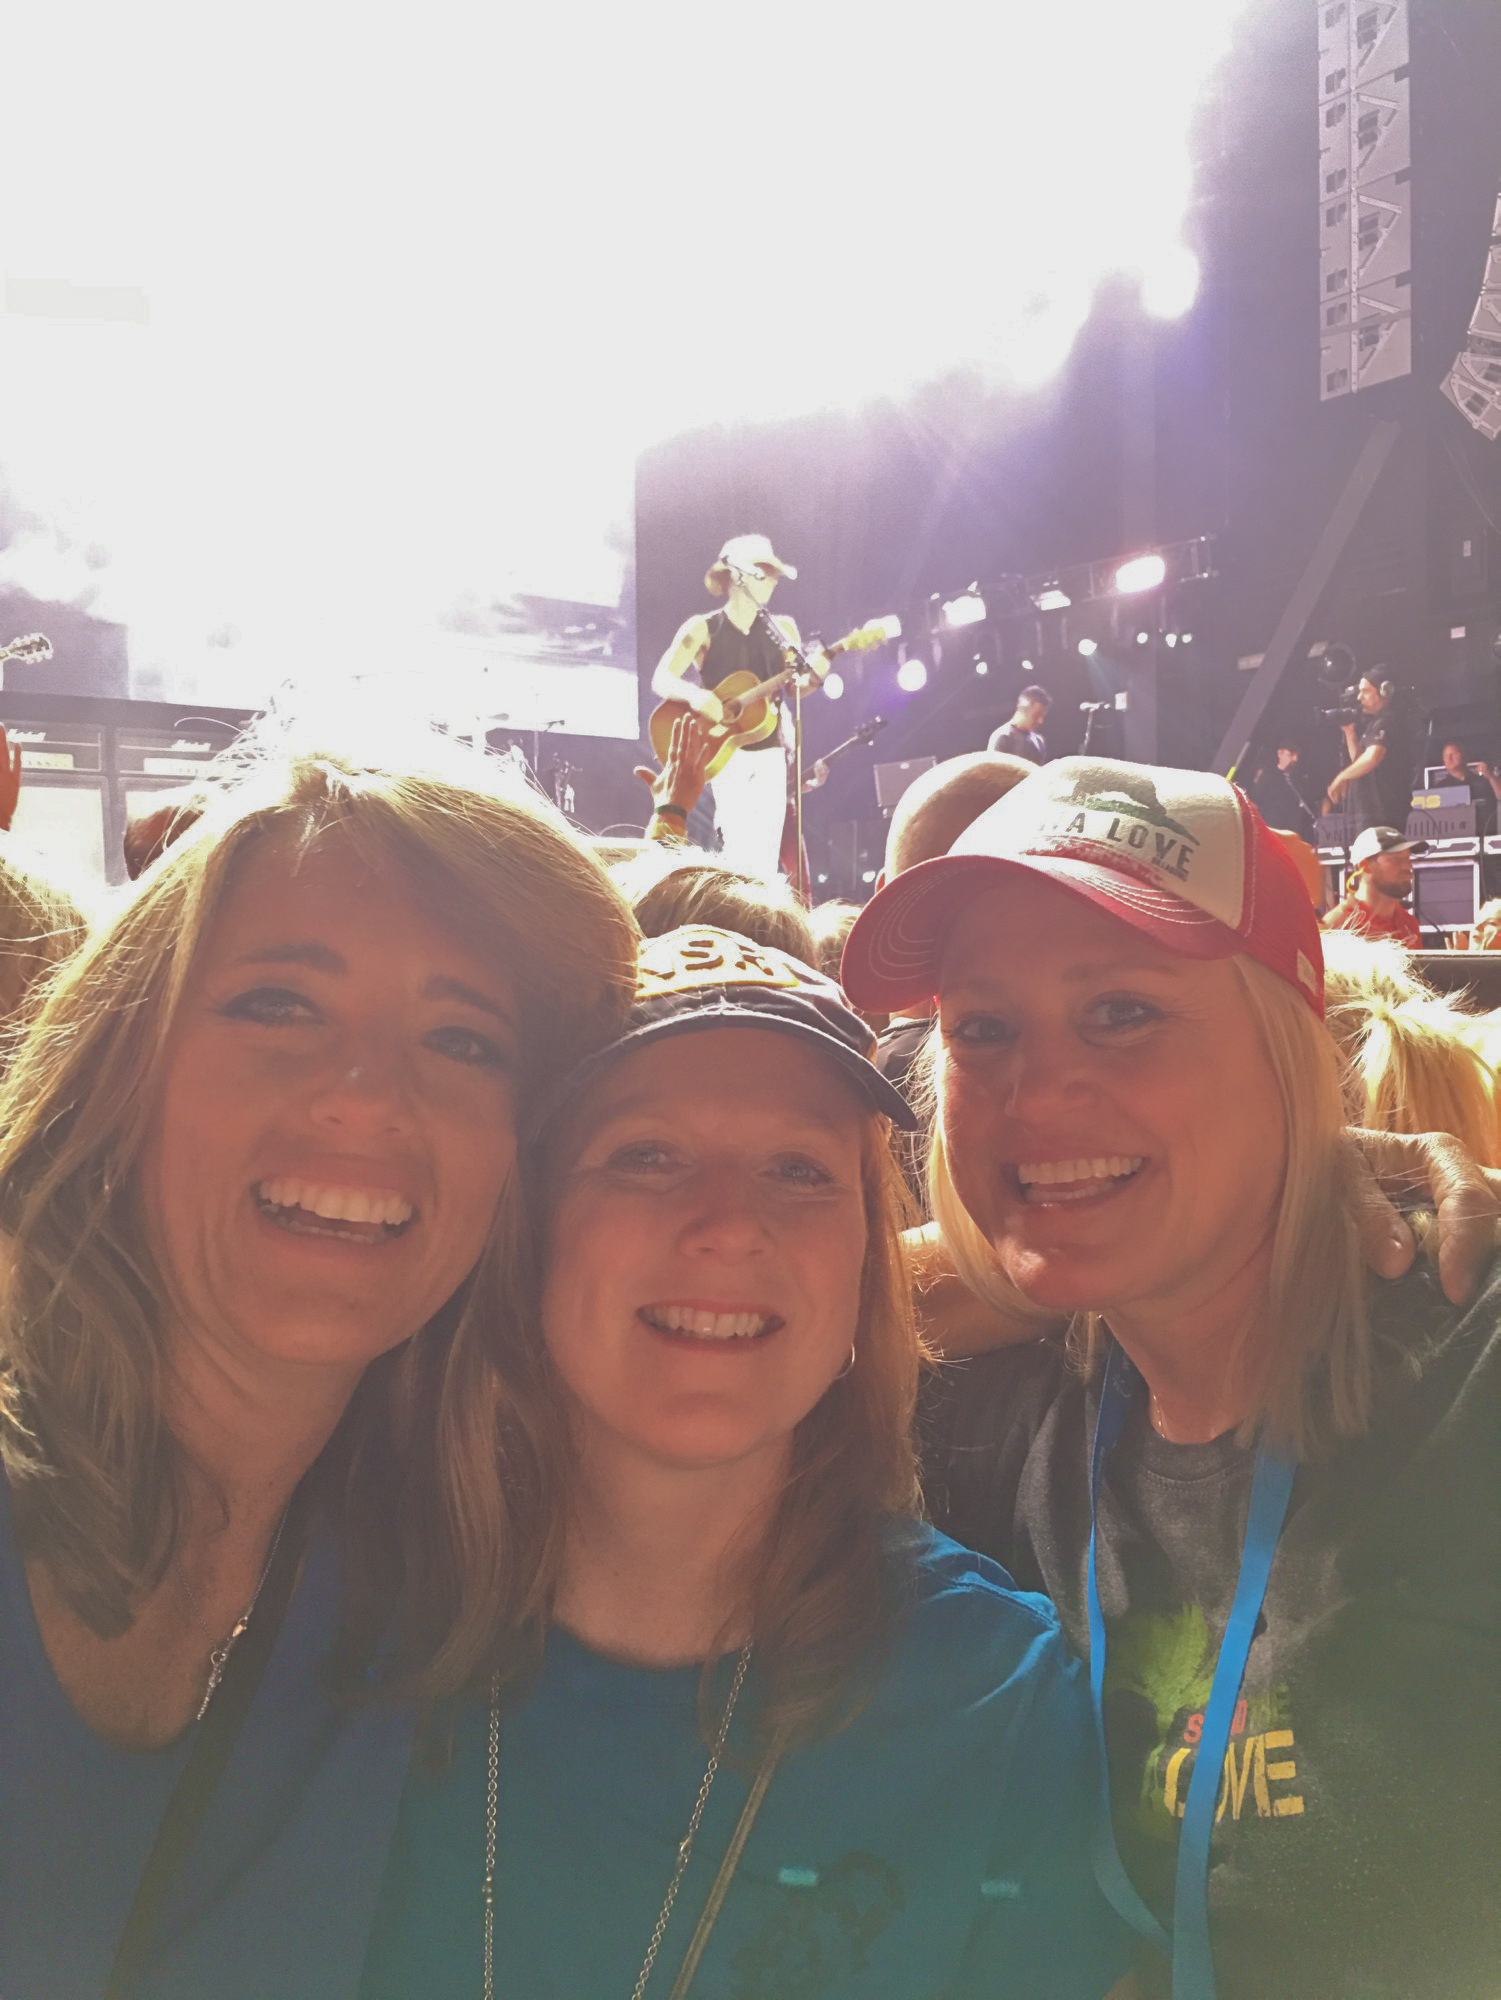 Connie, Michelle, and me with Kenny on stage behind us. www.Welcometothesandbar.com is there website.